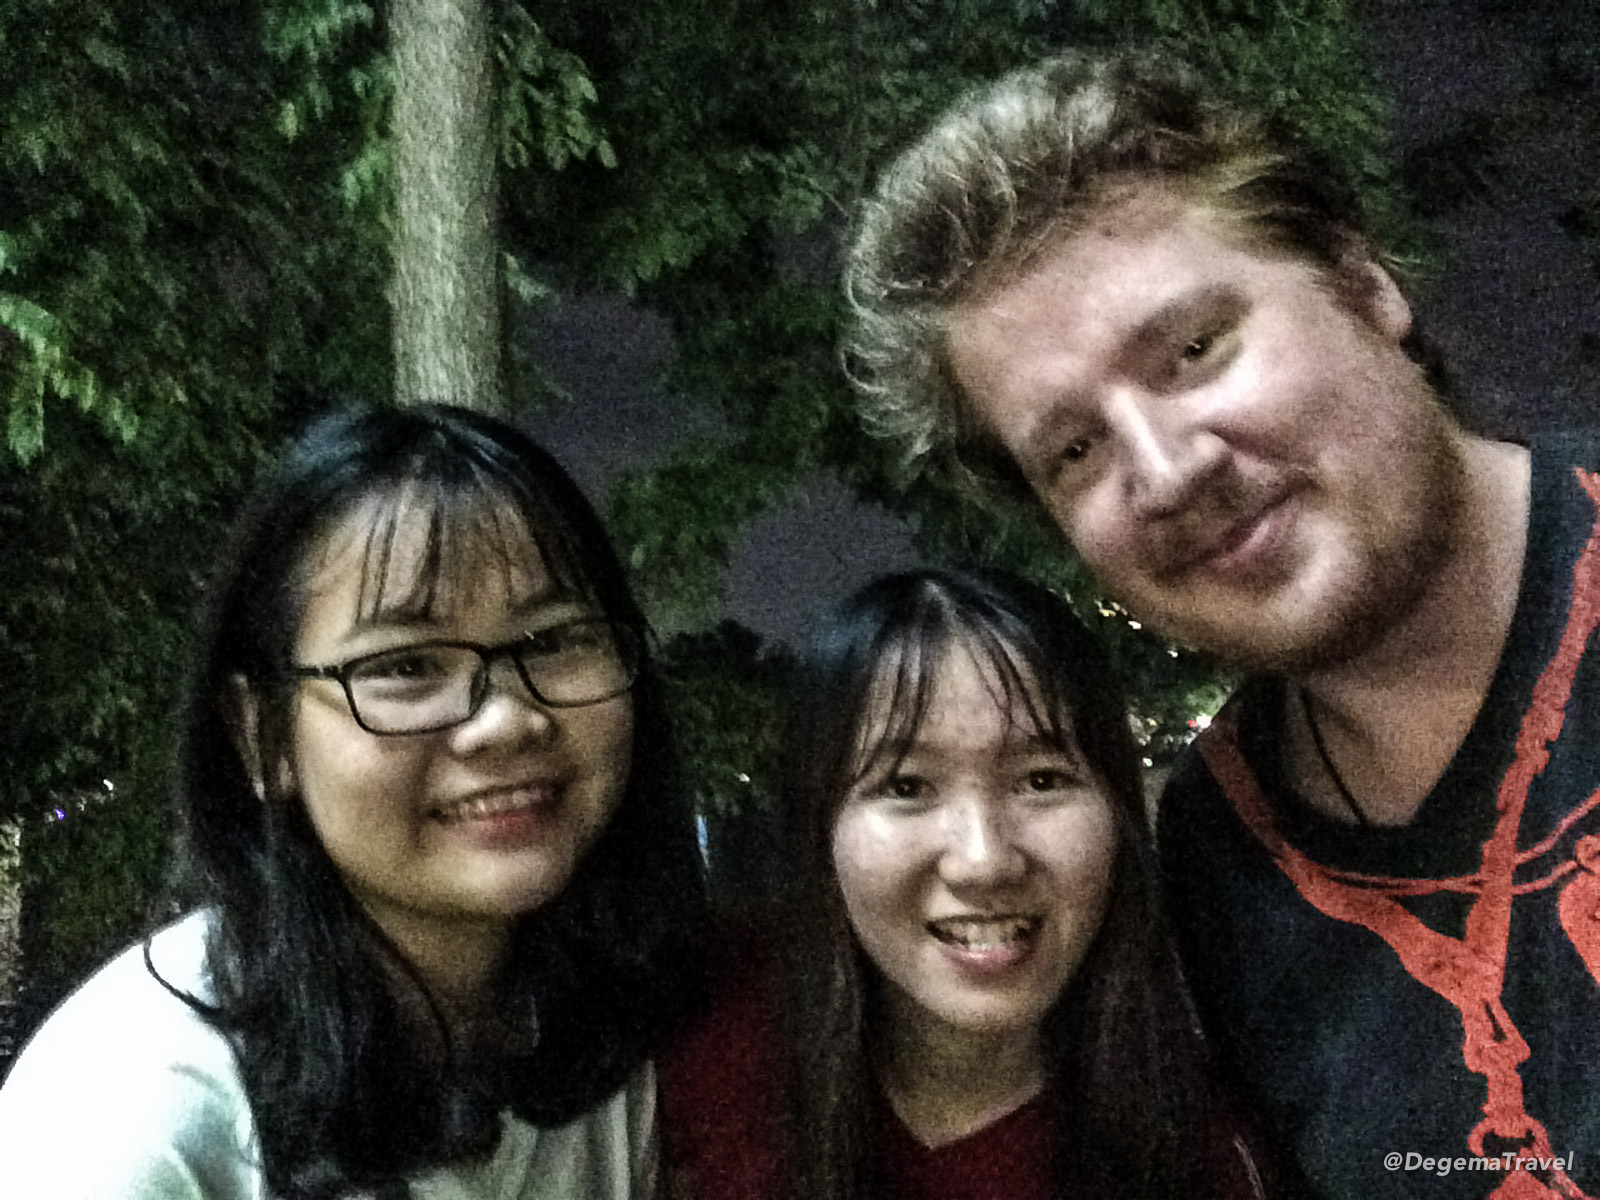 A couple of Vietnamese girls who asked to practise their English with me in Hanoi, Vietnam